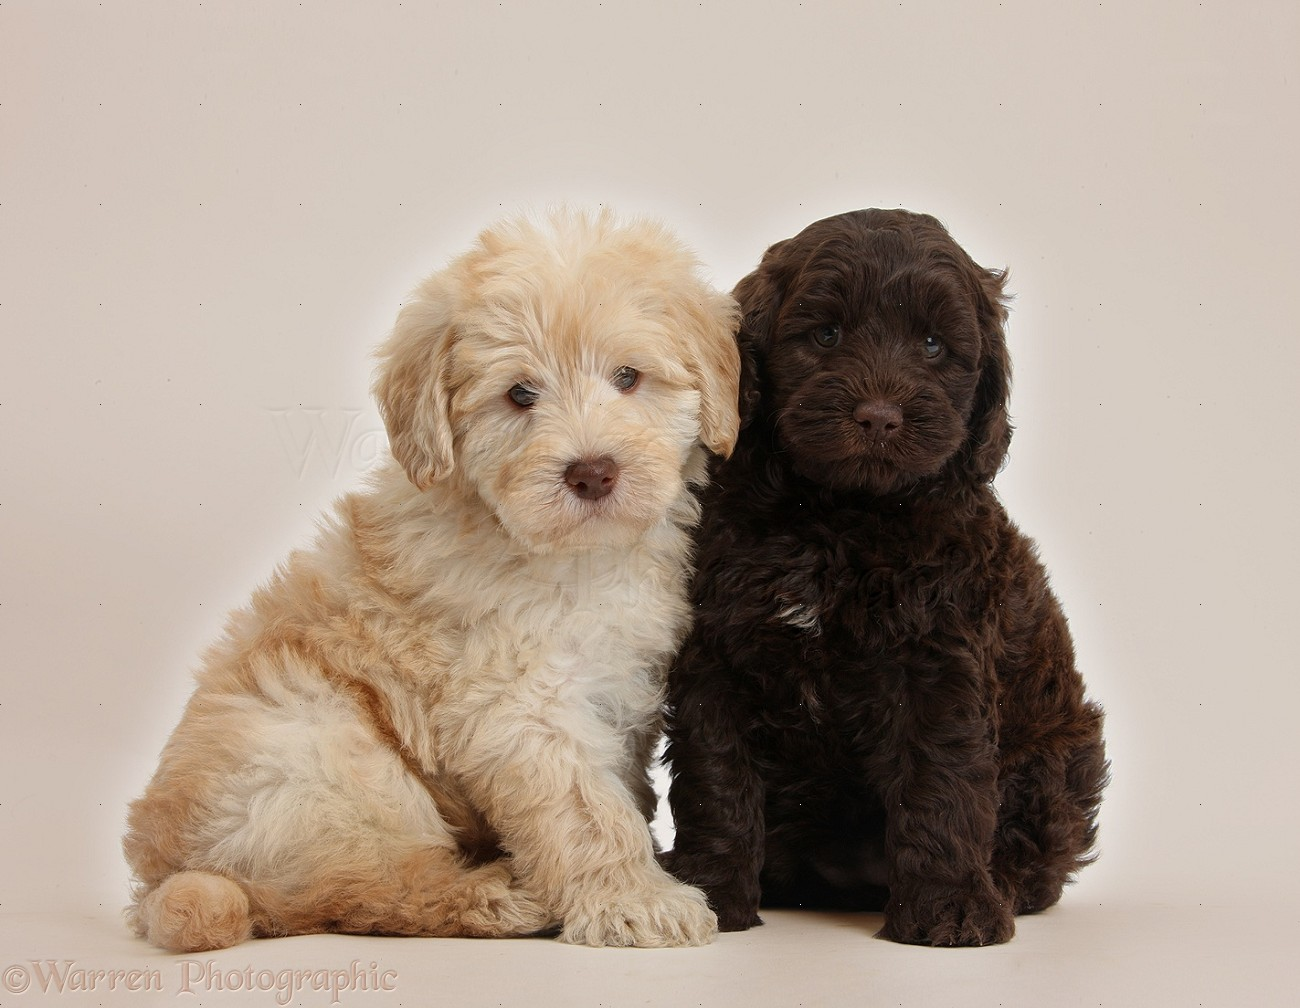 Dogs: Cute Toy Goldendoodle puppies on beige background ...